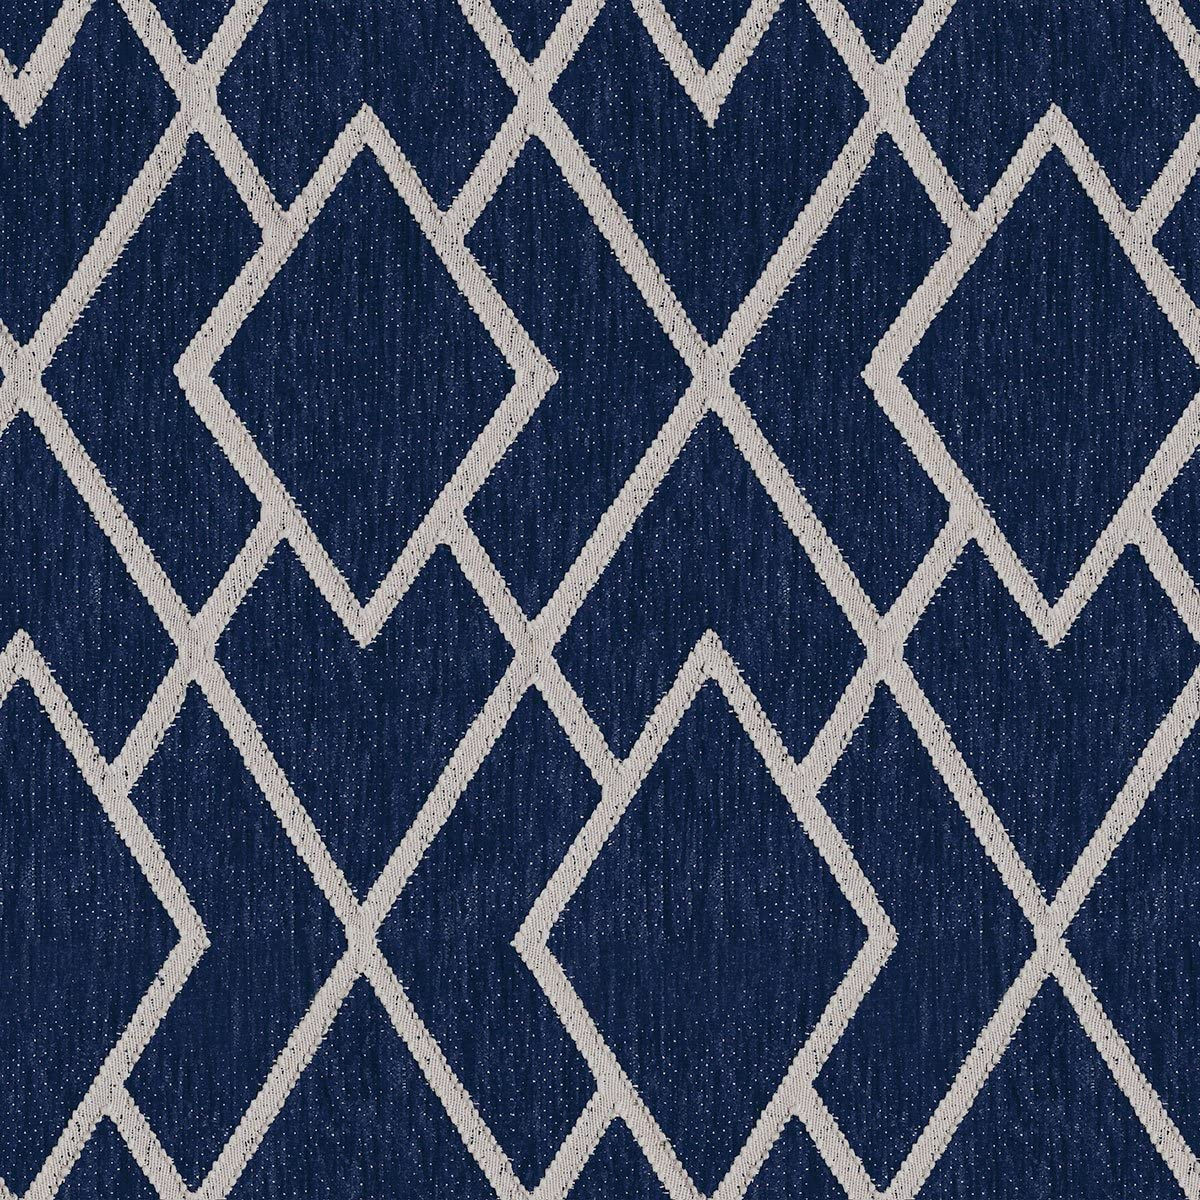 Navy Blue Cream beige taupe Upholstery Jacquards 67% OFF of fixed price Woven Luxury goods Geometric